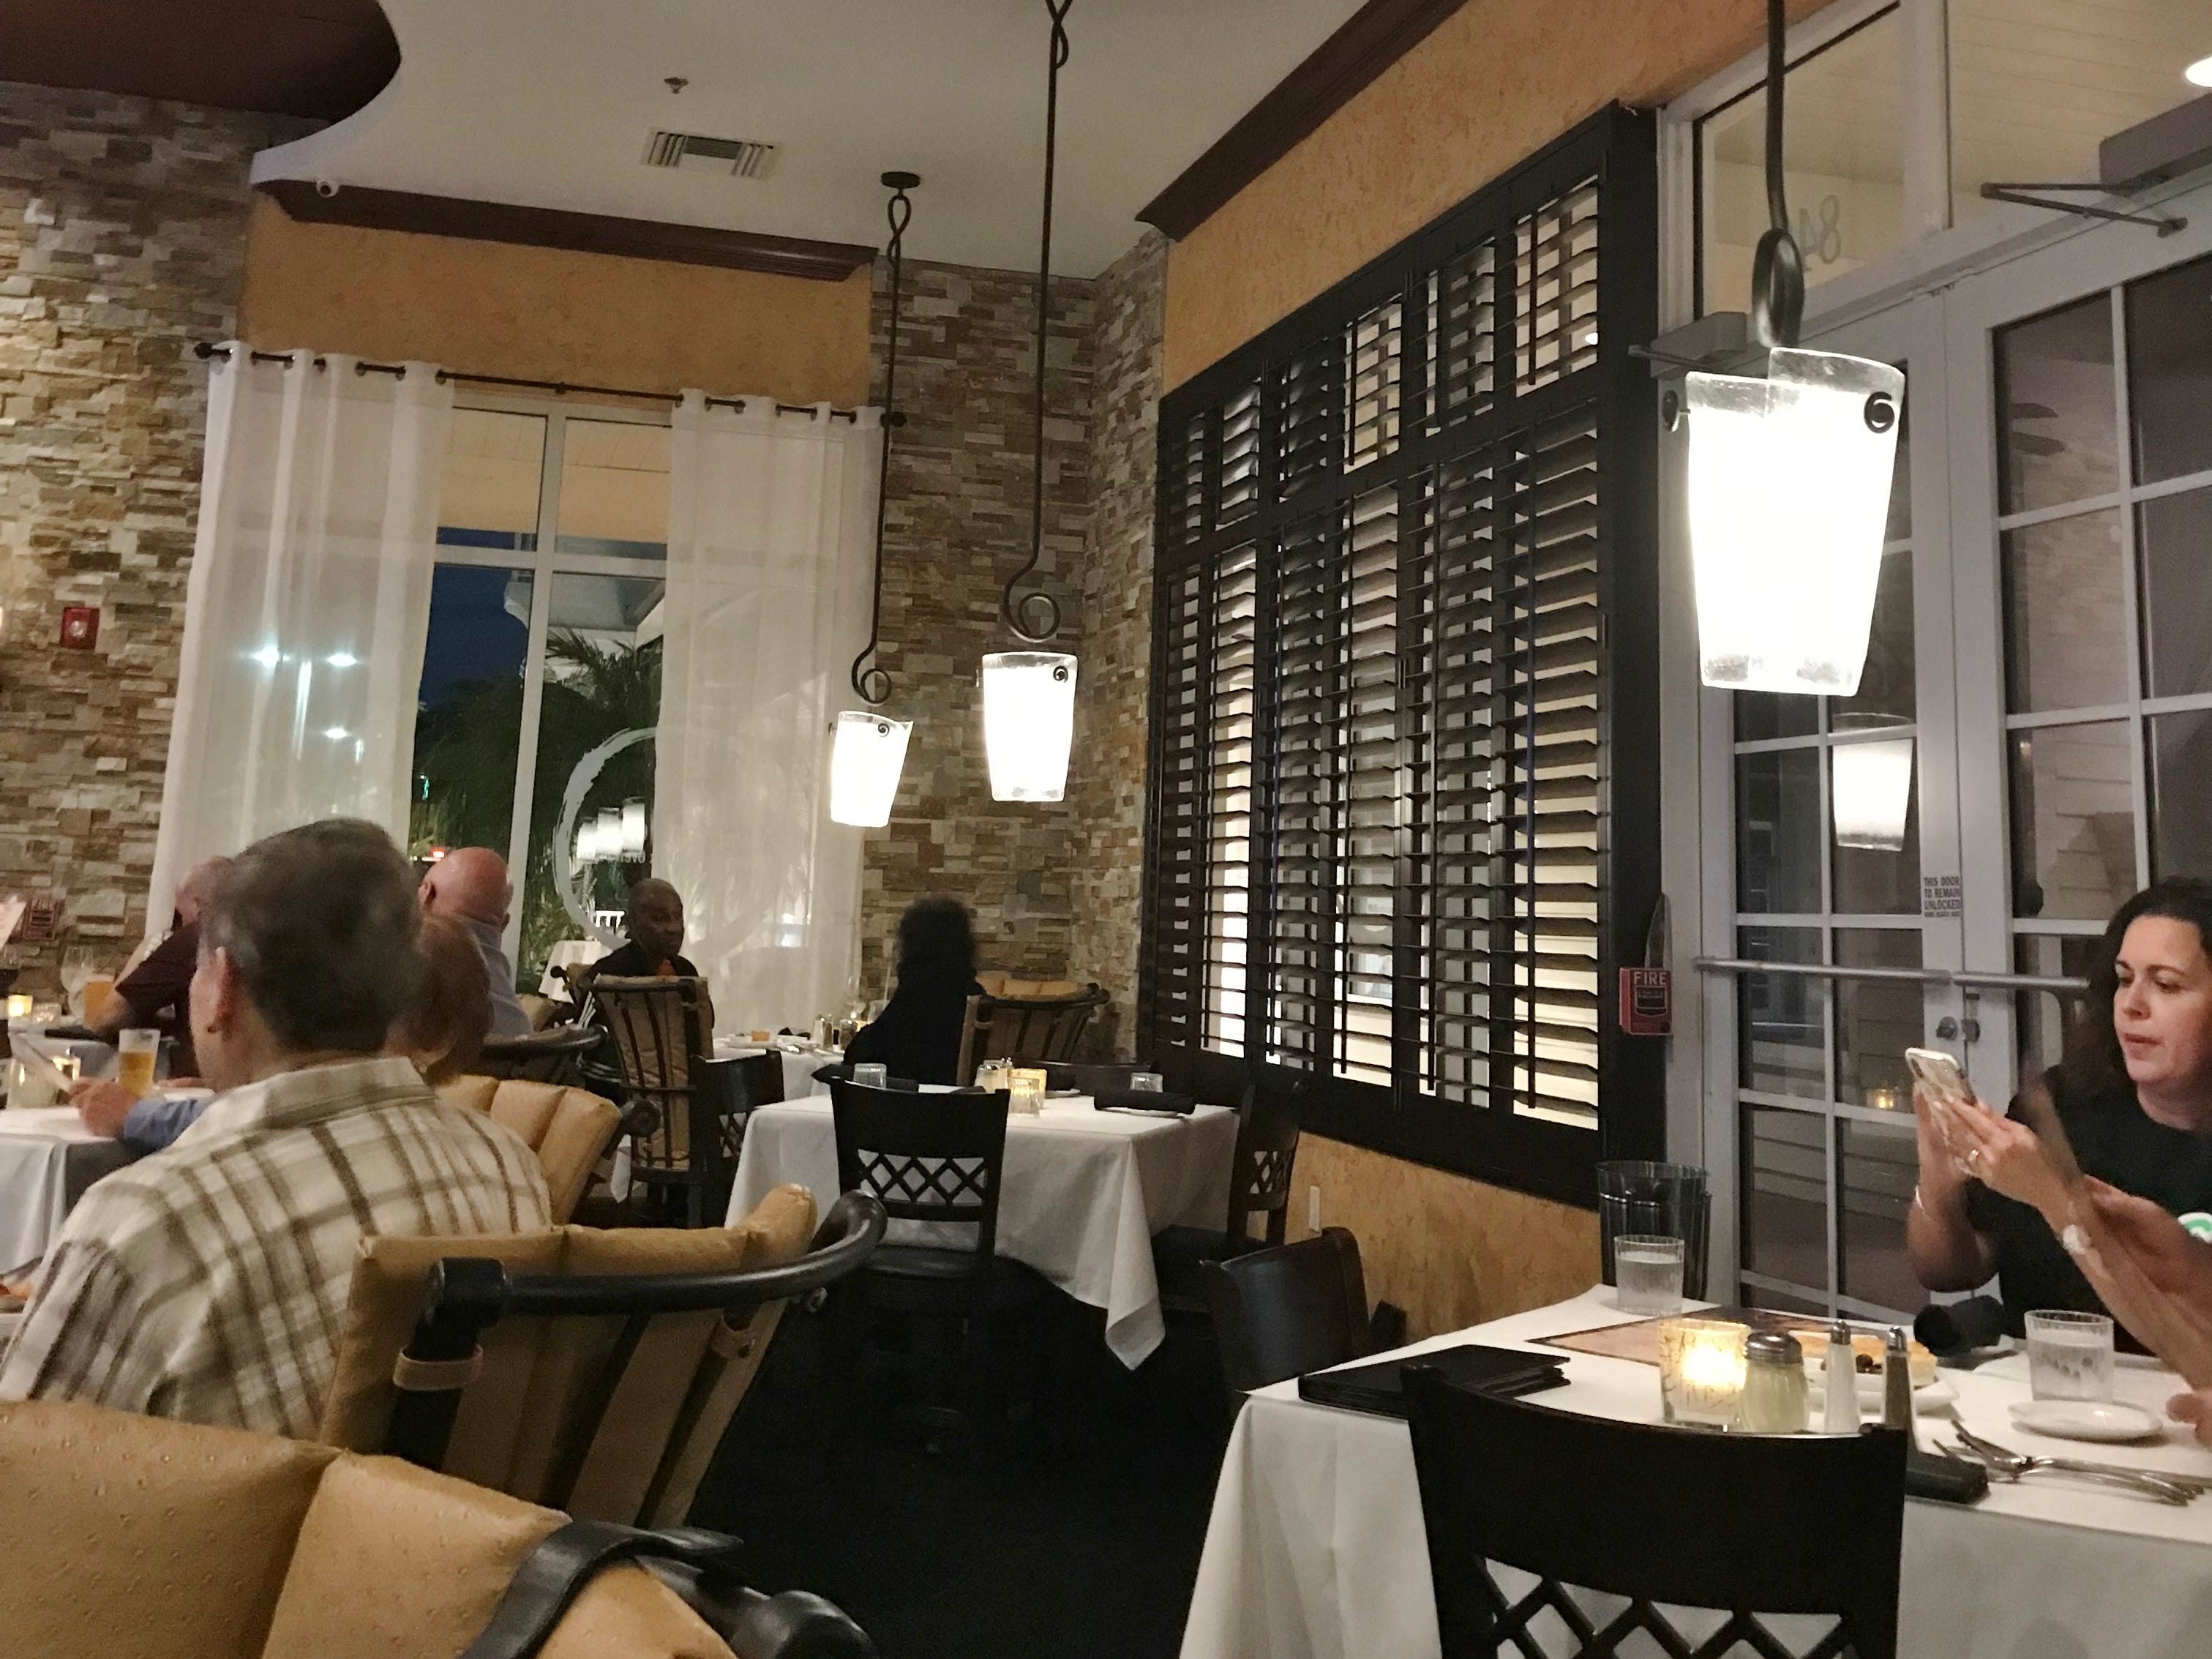 Mamma Mia Osteria has high ceilings and rustic stone walls.